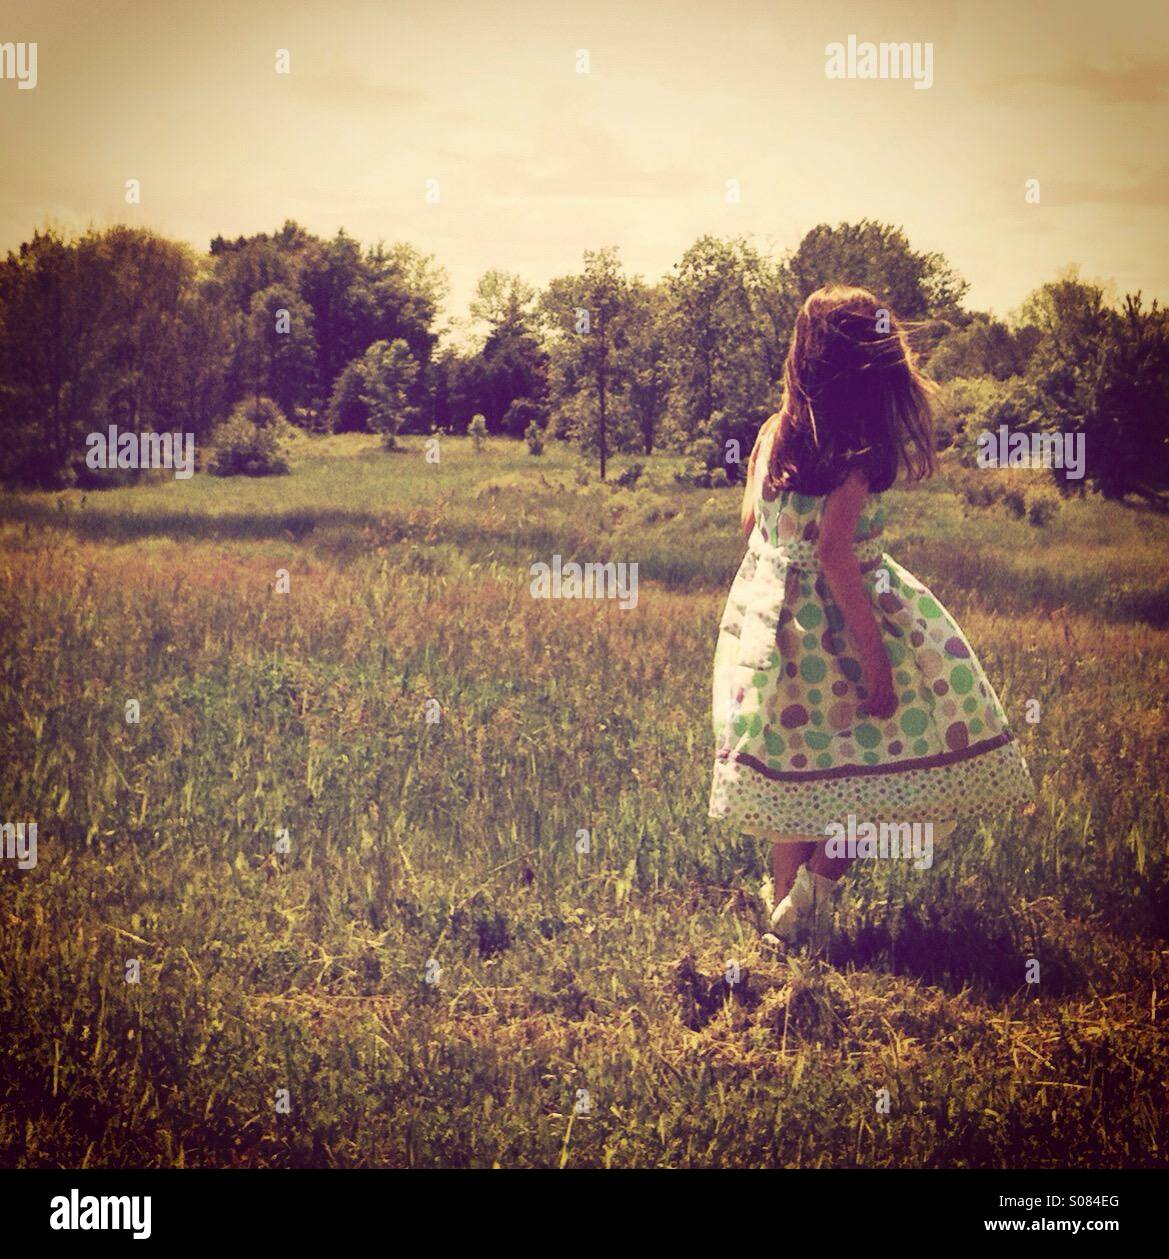 A little girl walks in a field, she turns toward the forest in the distance lending a sense of mystery to the image. - Stock Image